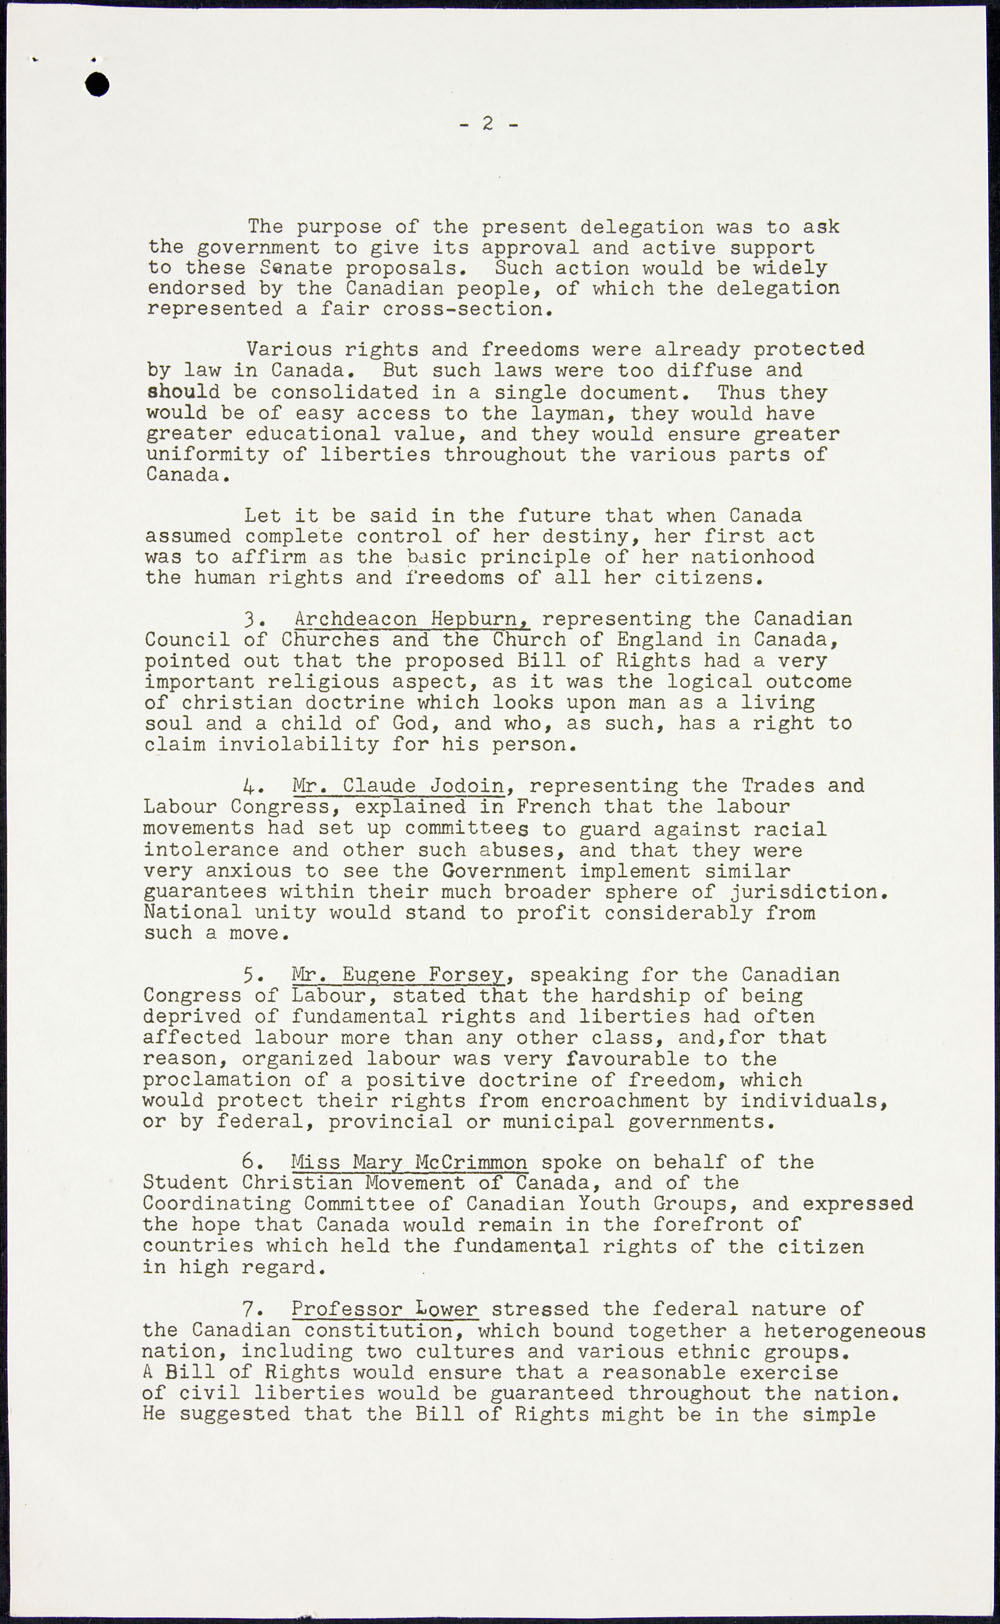 Page two of minutes recorded by Pierre Elliott Trudeau when a  delegation met with Prime Minister Louis St. Laurent to advocate a Bill of Rights, May 10, 1951